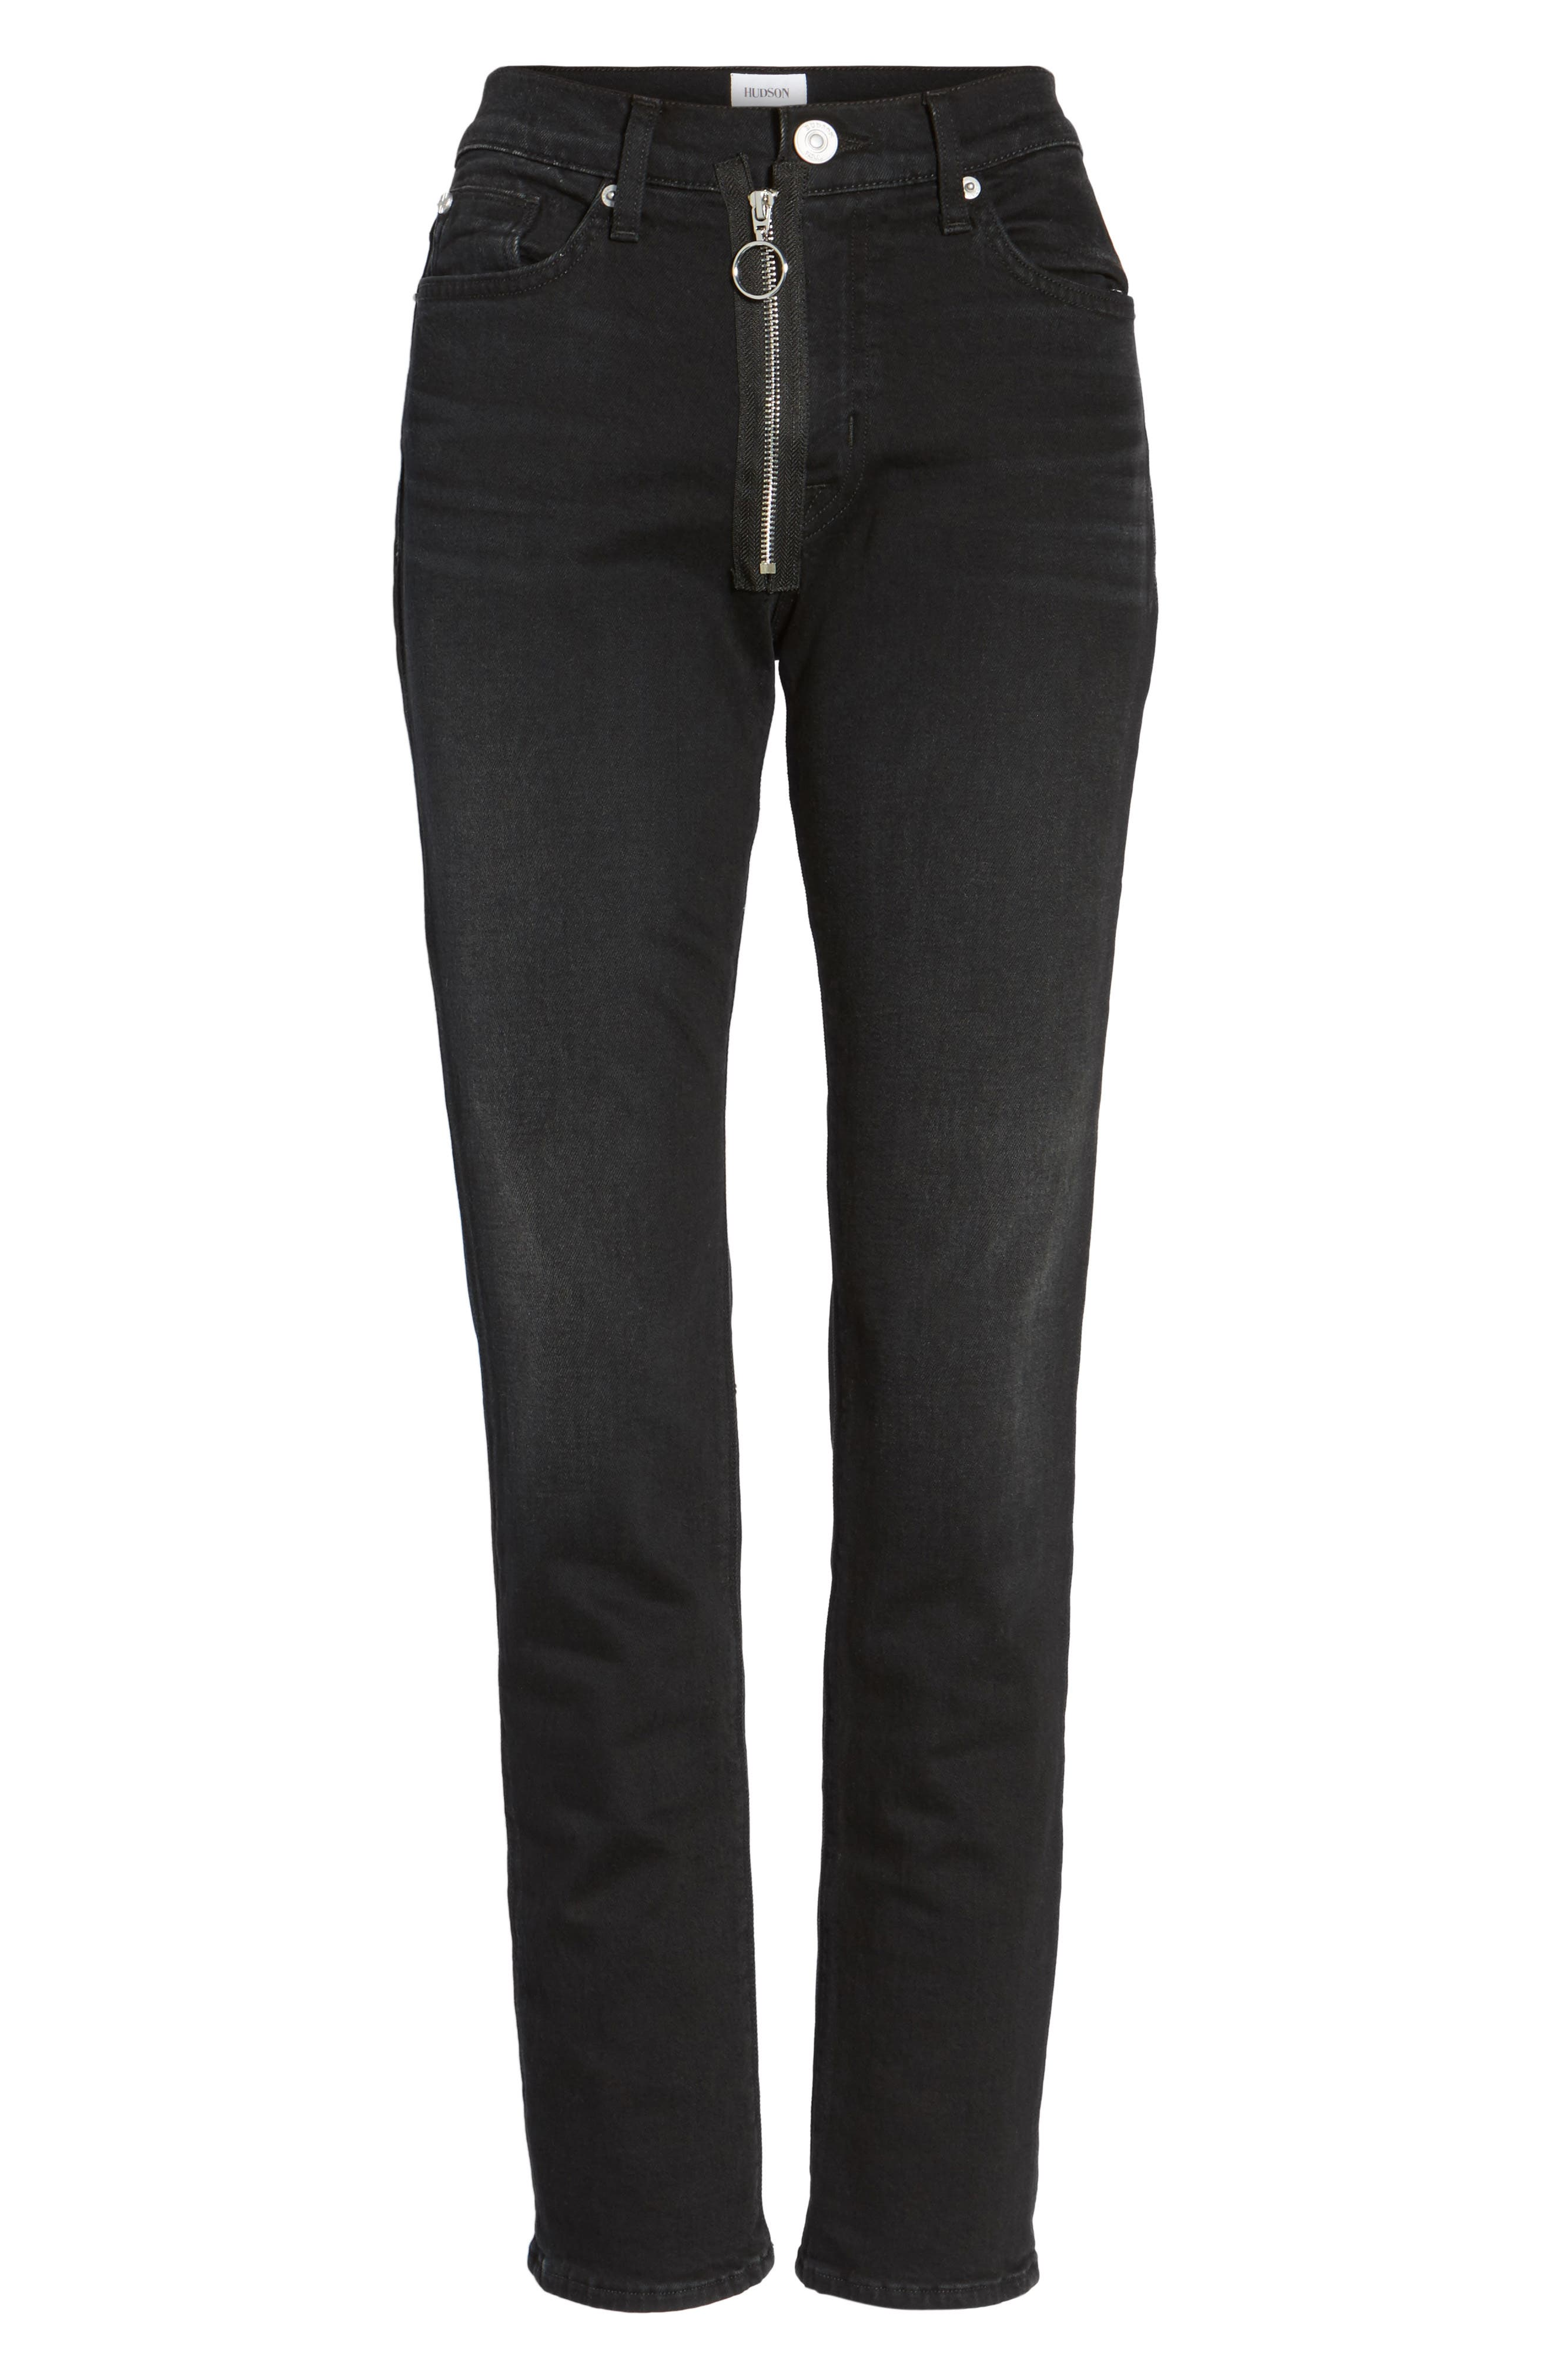 Riley Relaxed Straight Fit Jeans,                             Alternate thumbnail 6, color,                             001